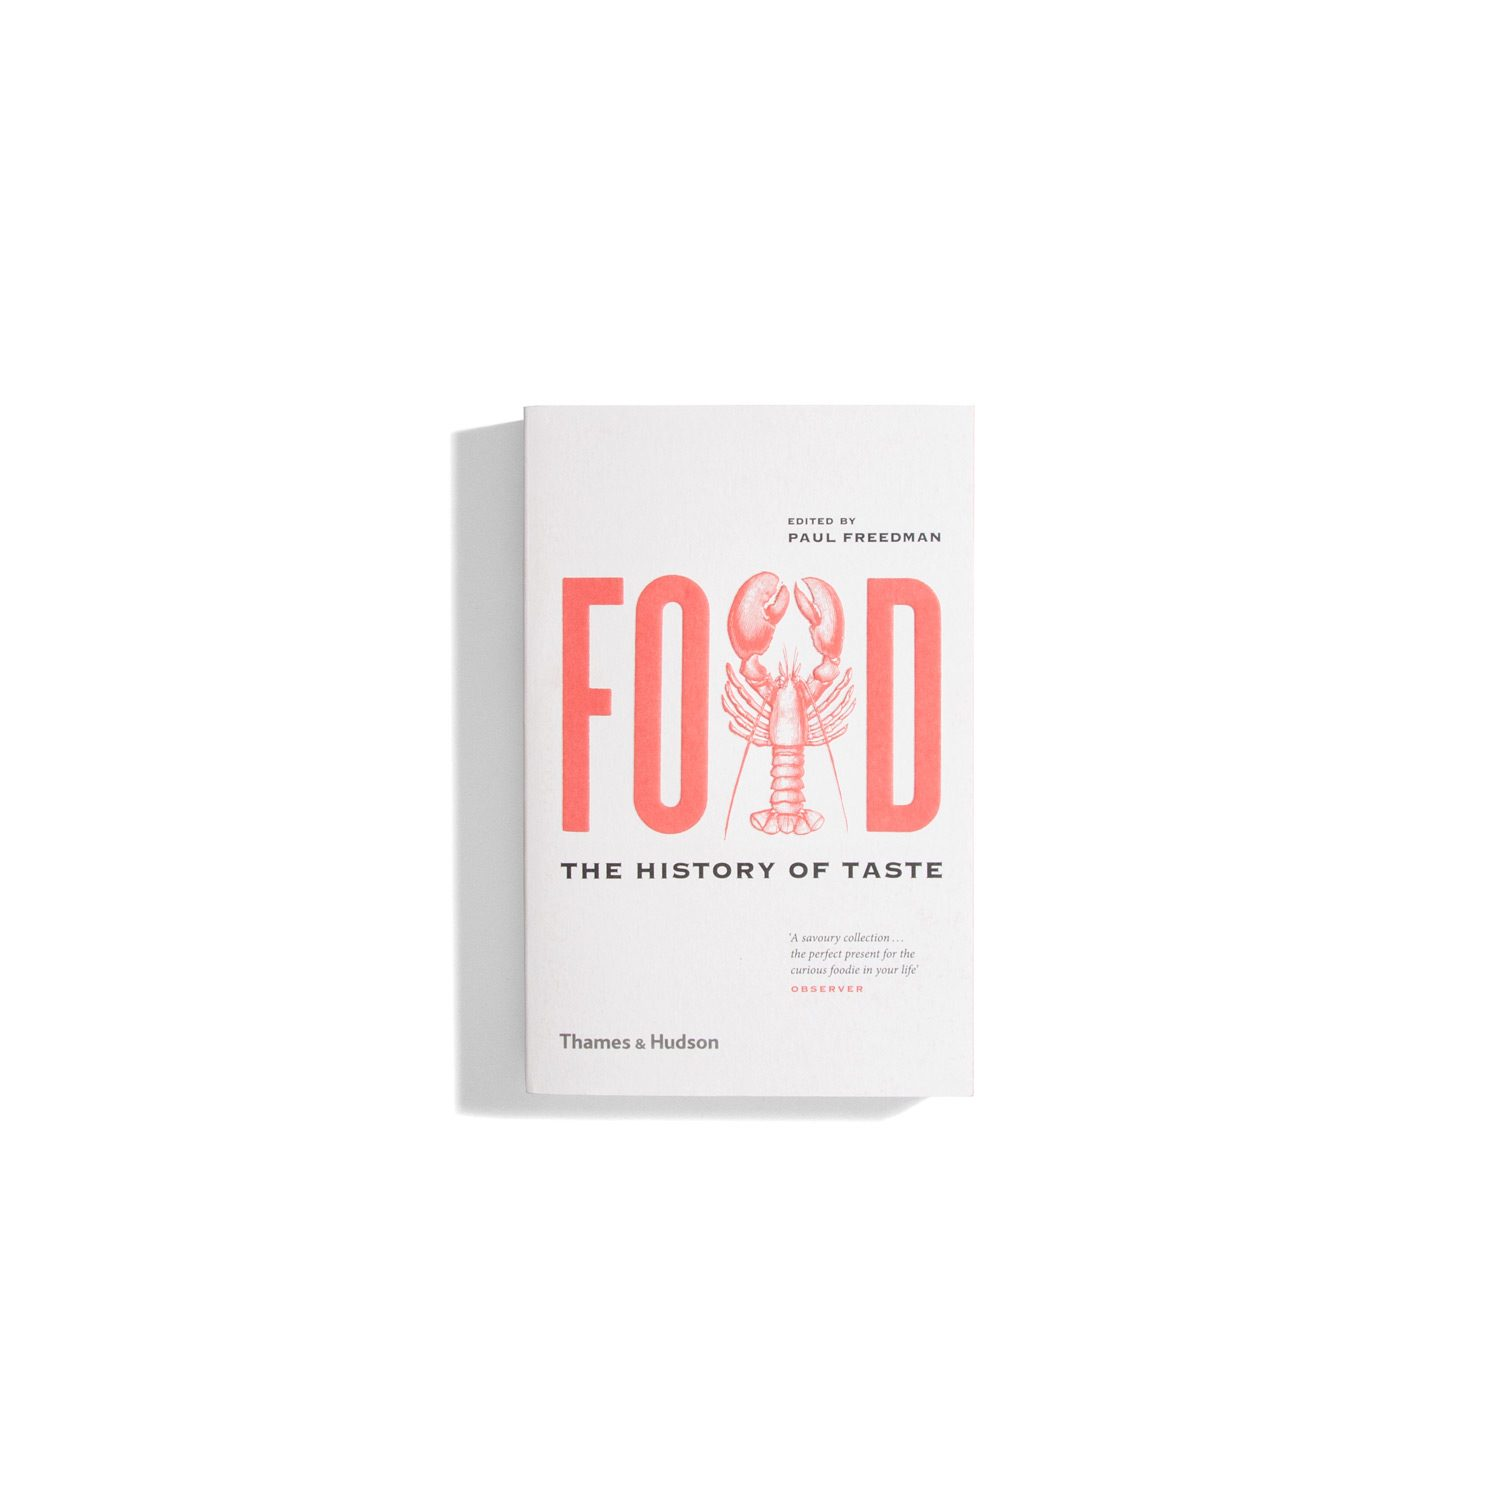 Food - The History of Taste